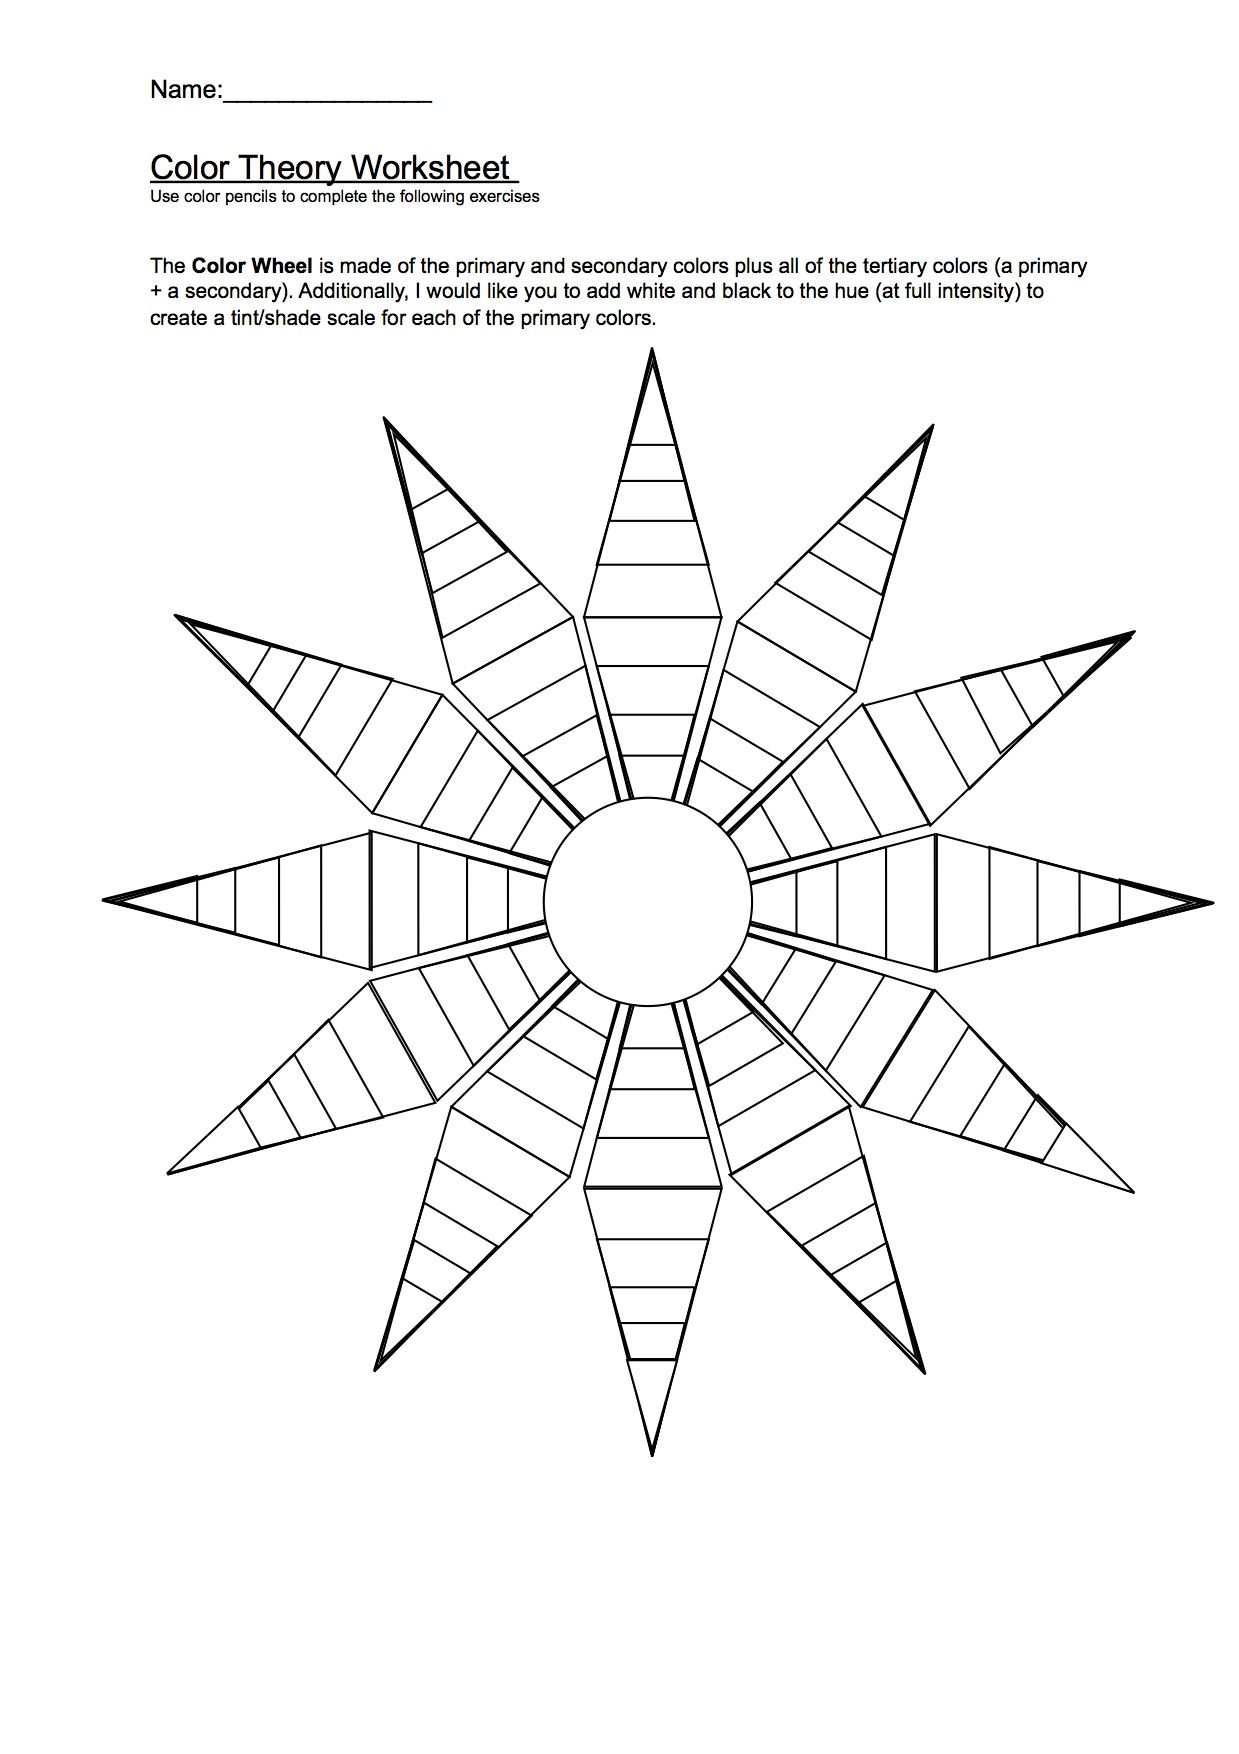 Color Wheel Worksheet Worksheets And Color Wheels